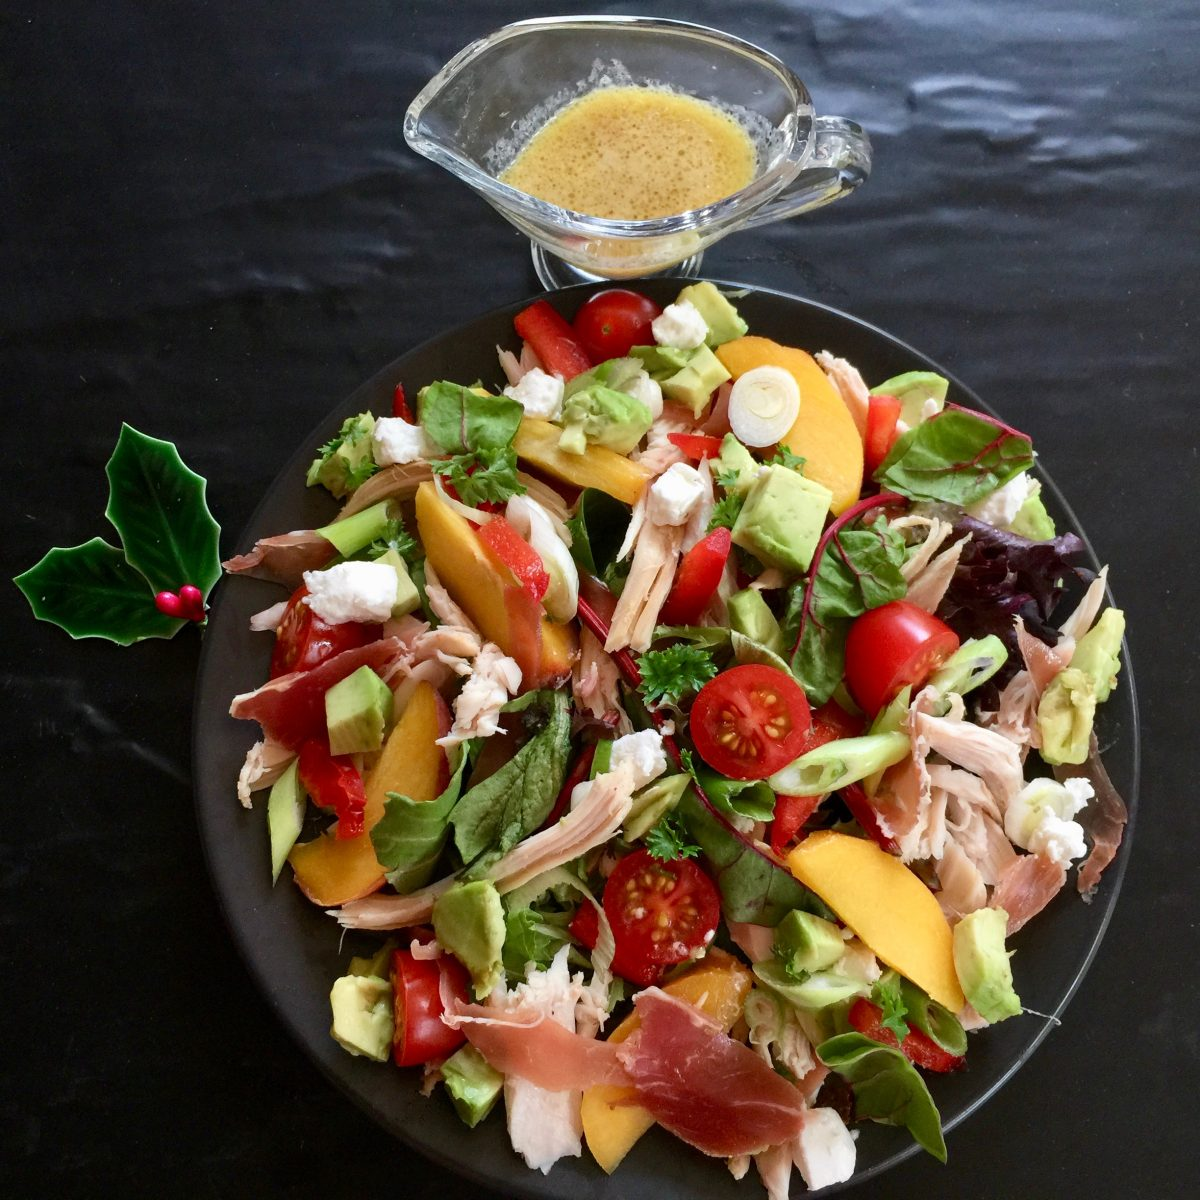 a vibrant salad filled with avocado, lettuce, cooked chicken, wedges of fresh peaches, halved cherry tomatoes, red chilli, mixed lettuce, baby spinach, rocket, avocado, prosciutto, goats cheese, green shallots, served with a dijon mustard vinegarette